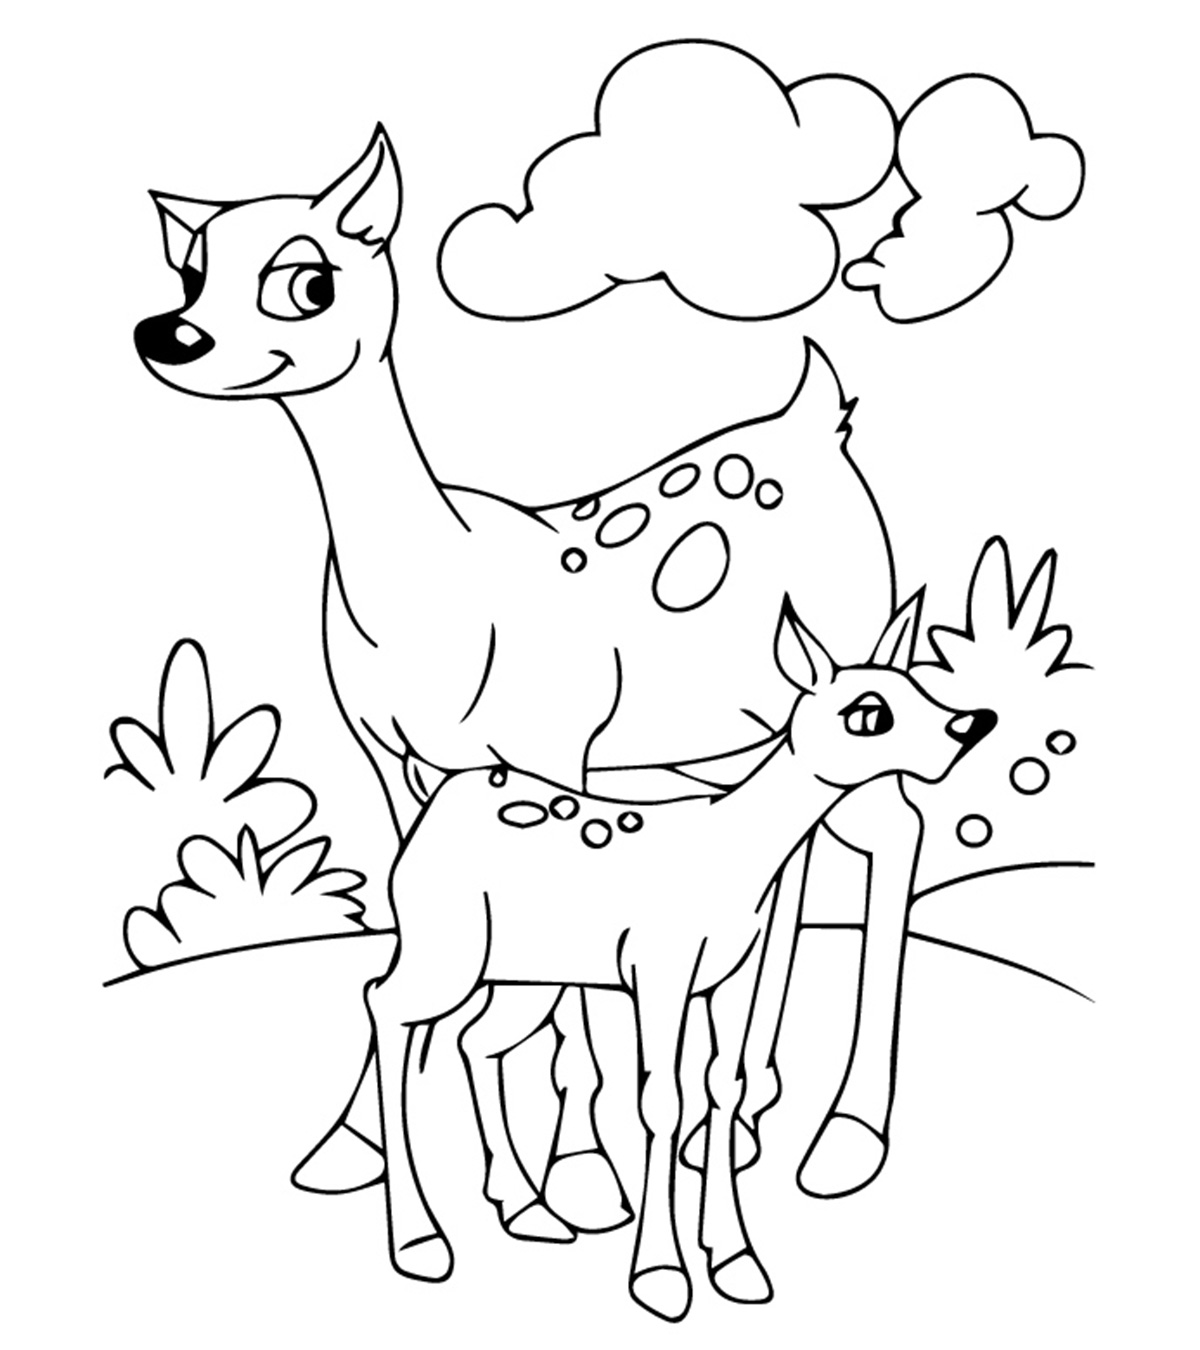 animal coloring pages momjunction. Black Bedroom Furniture Sets. Home Design Ideas